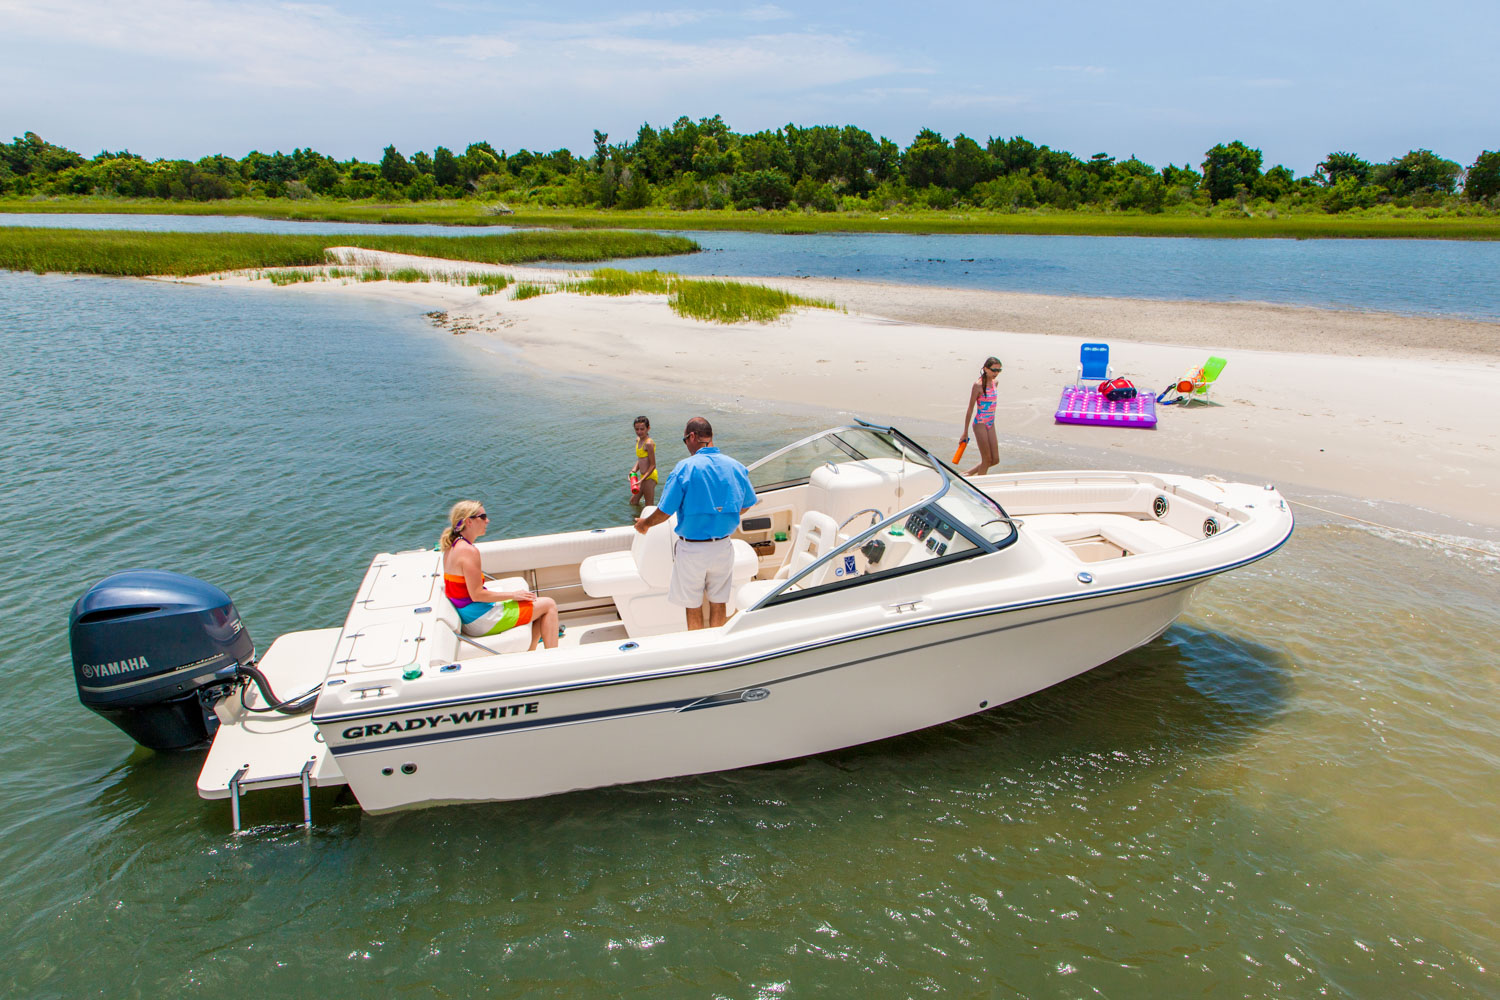 boat docked next to sandbar with family enjoying the water around it